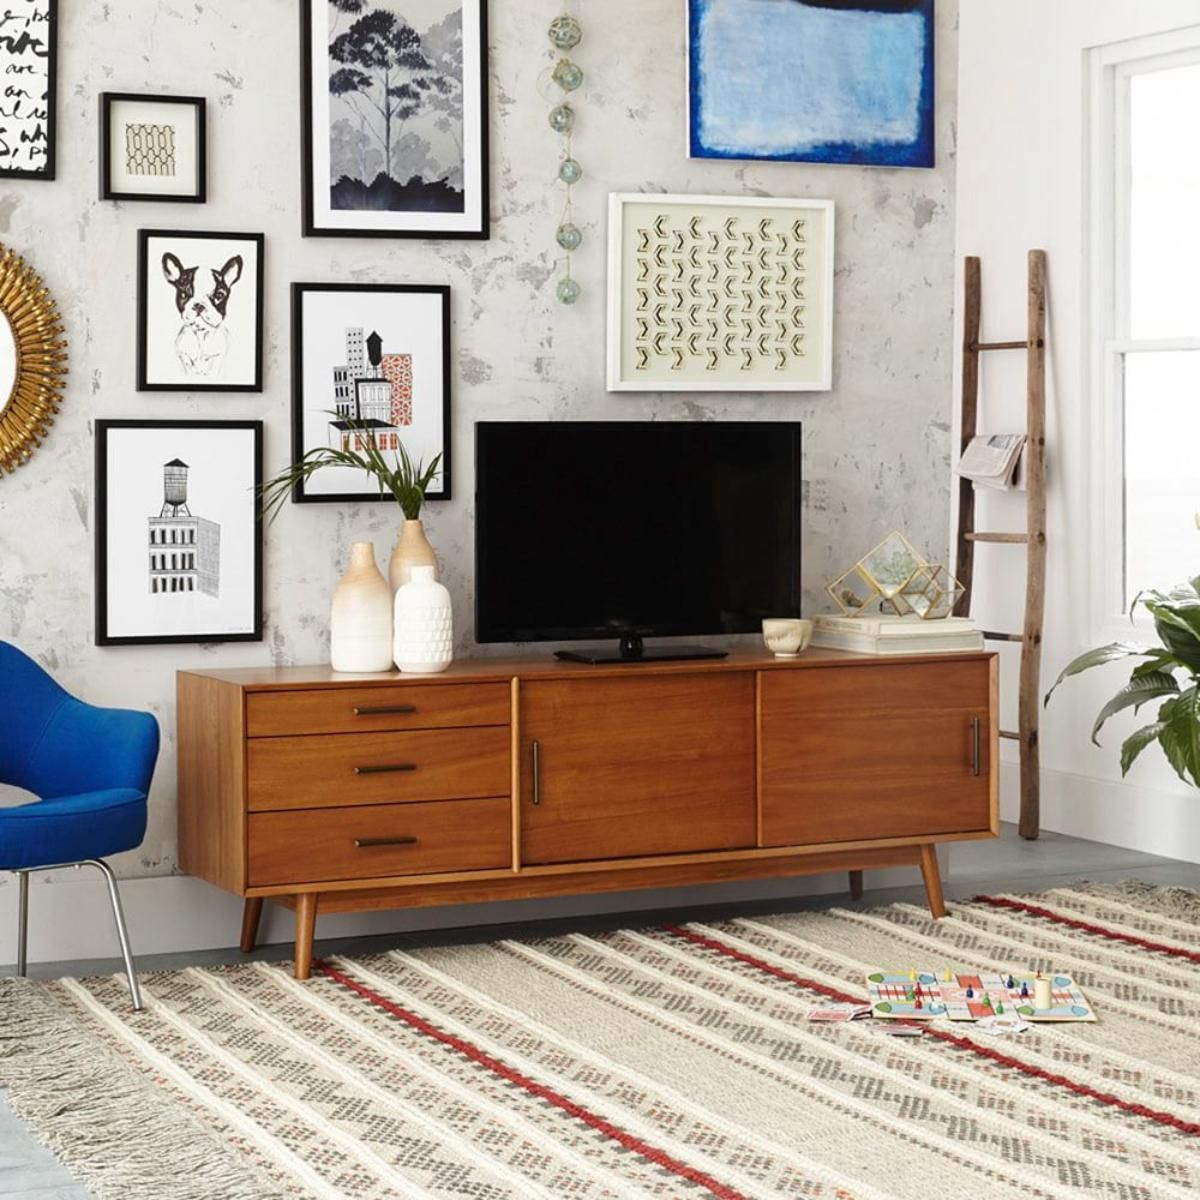 Mid Century Living Room Set A Gallery Wall And A Mid Century Media Console Make For The